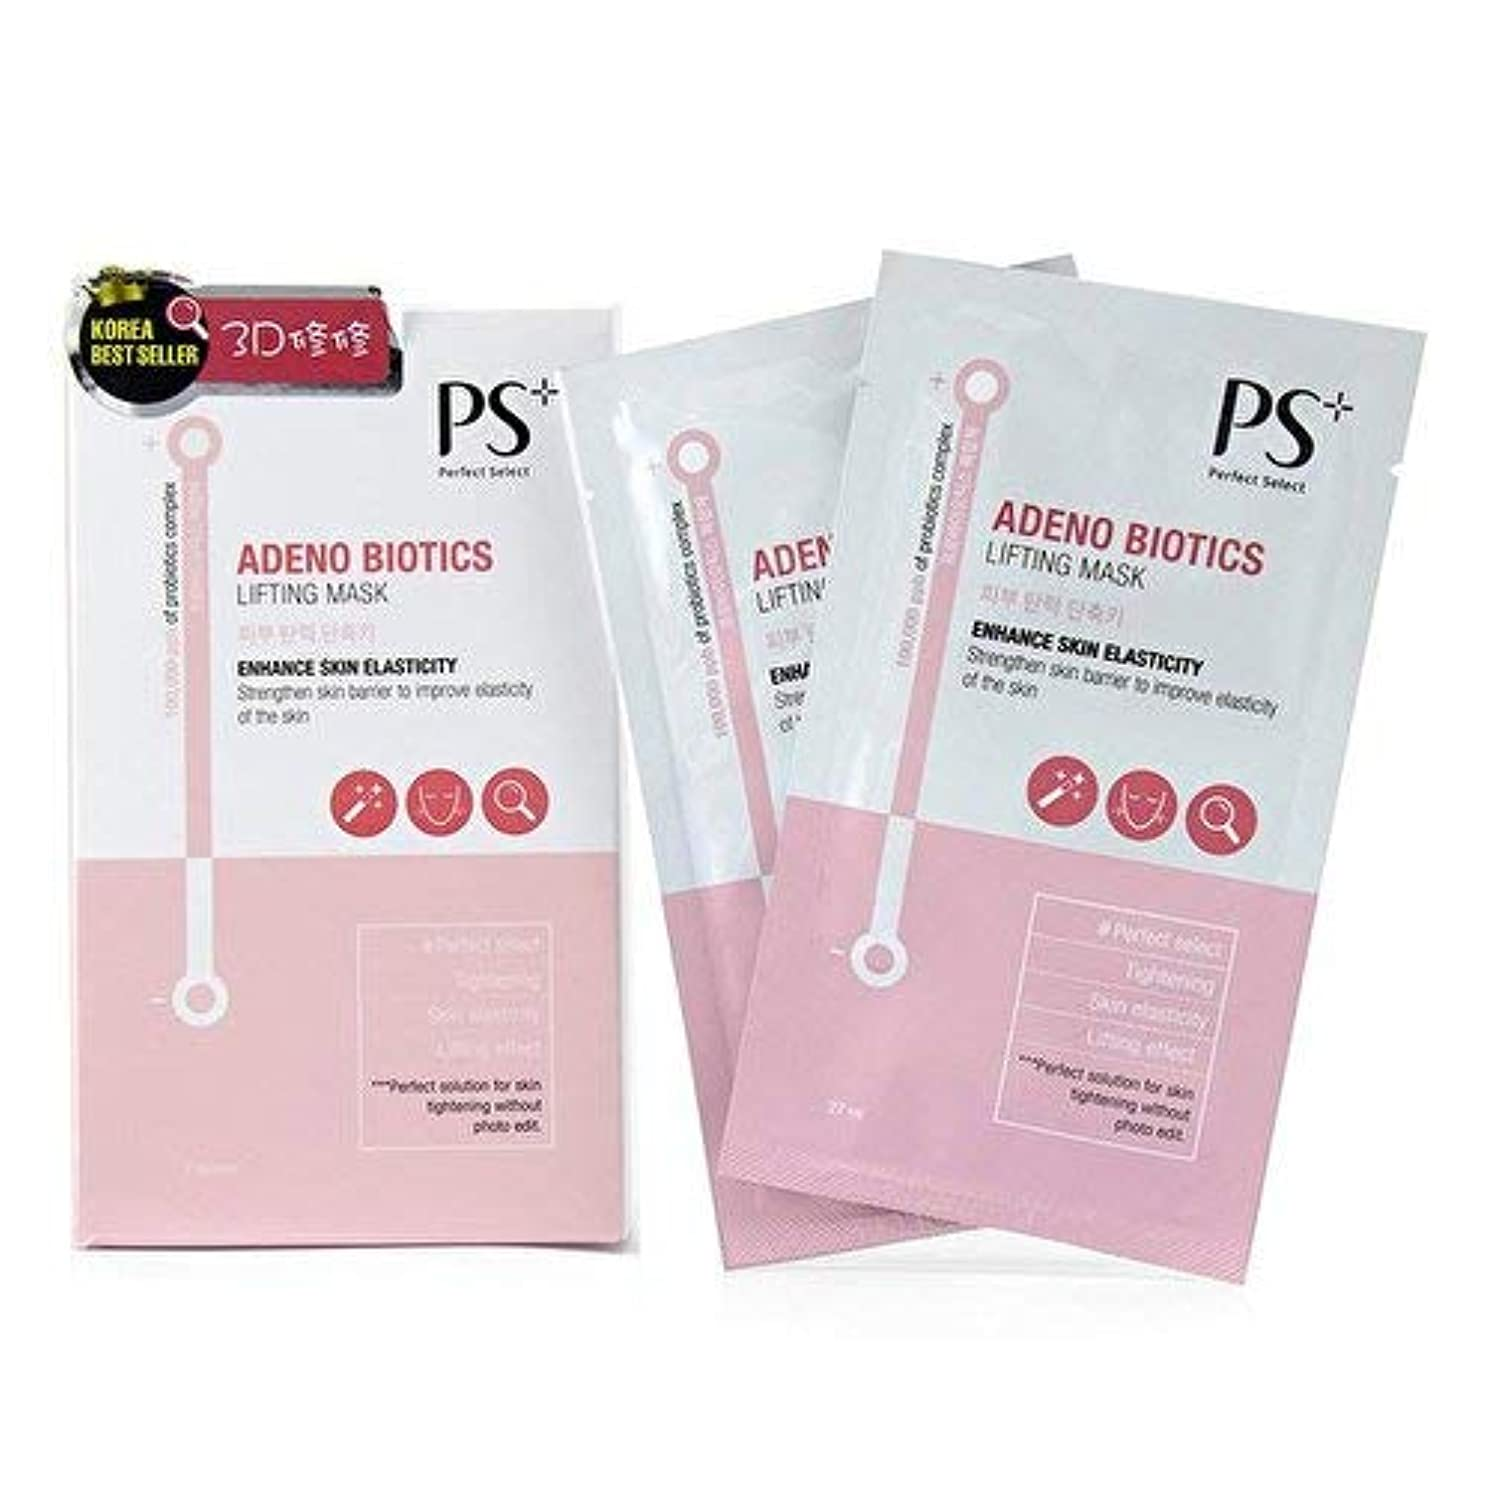 寝る愛情深いカカドゥPS Perfect Select Adeno Biotics Lifting Mask - Enhance Skin Elasticity 7pcs並行輸入品